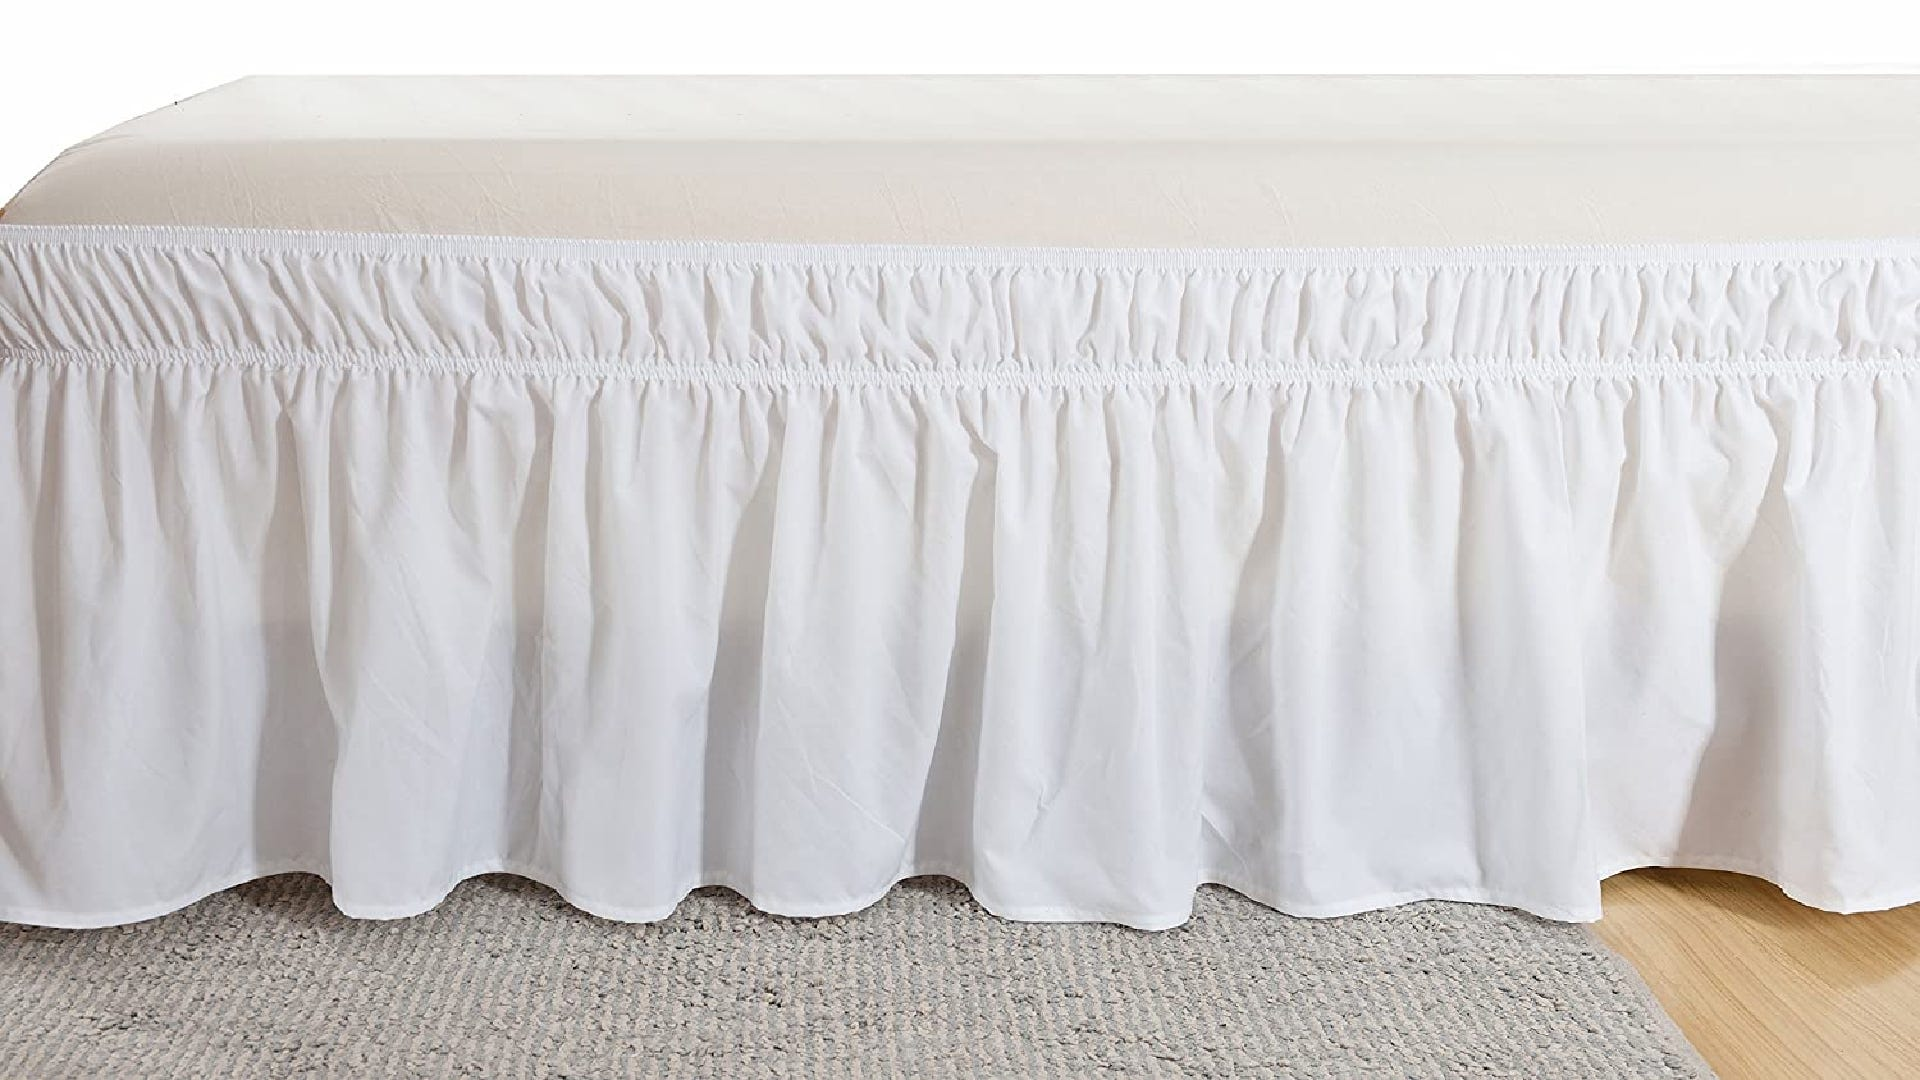 white bed skirt with elastic strap on bed